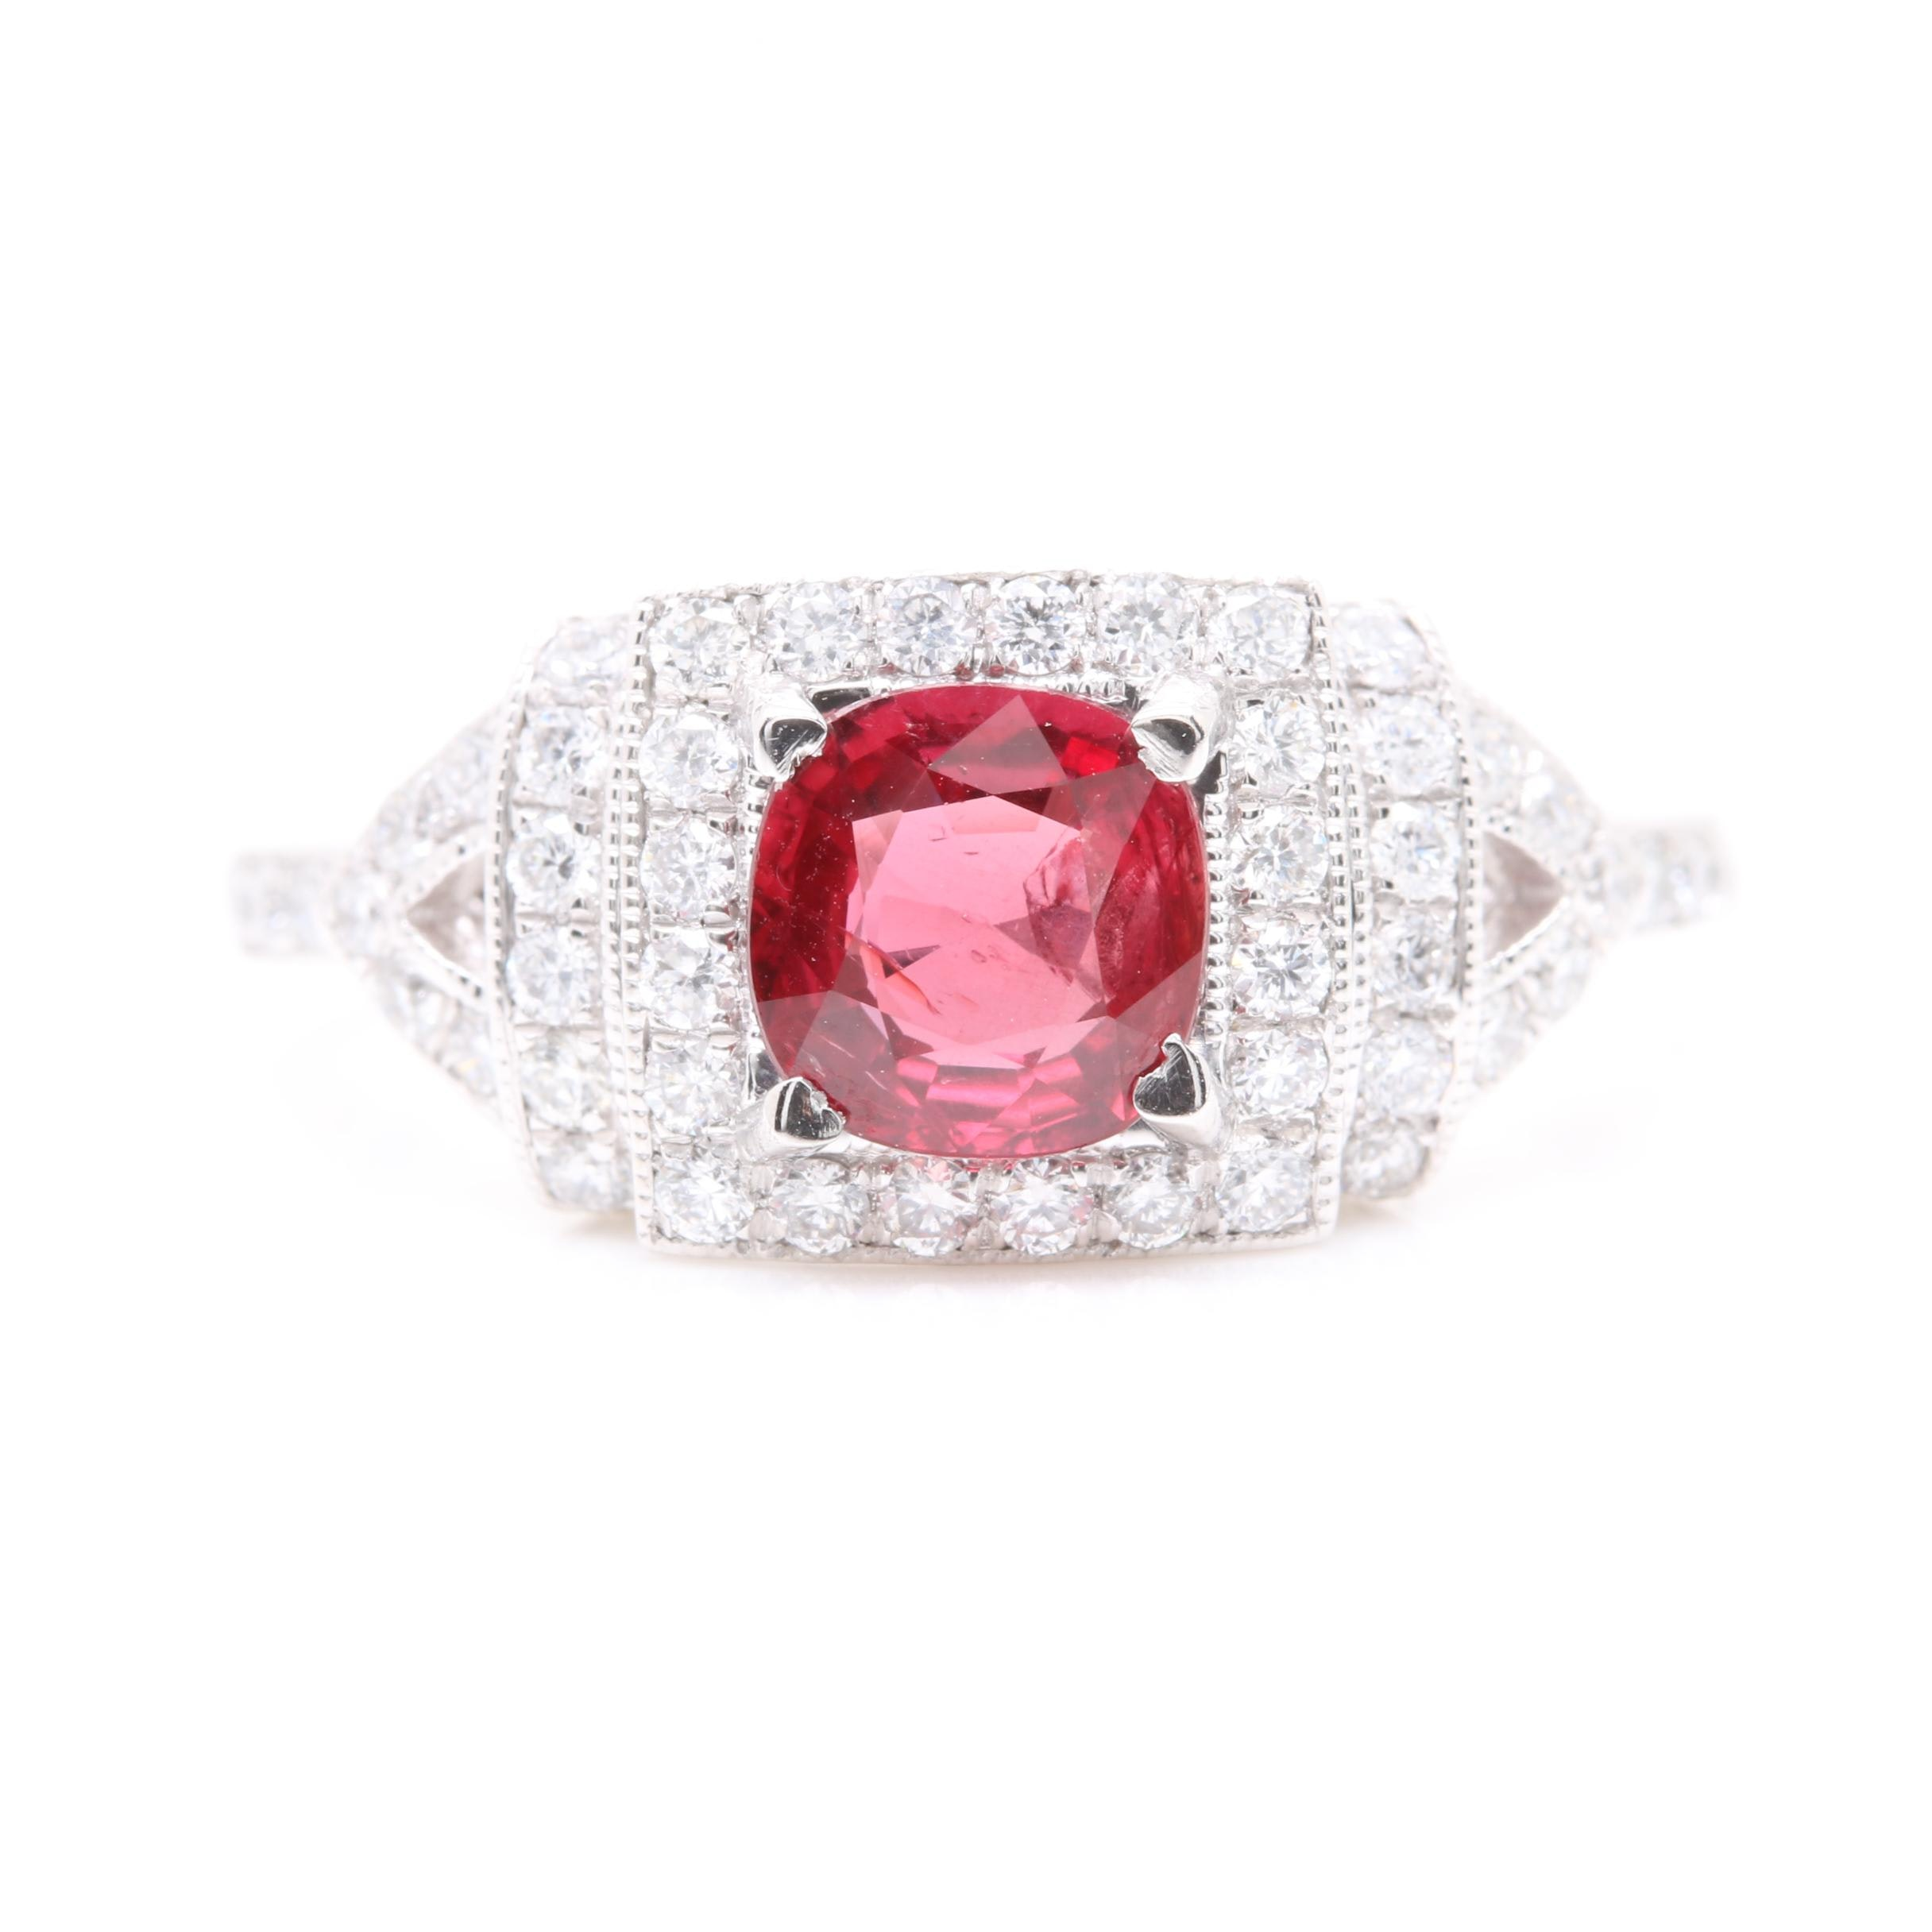 Platinum 1.10 CT Ruby and Diamond Ring Including GIA Ruby Report